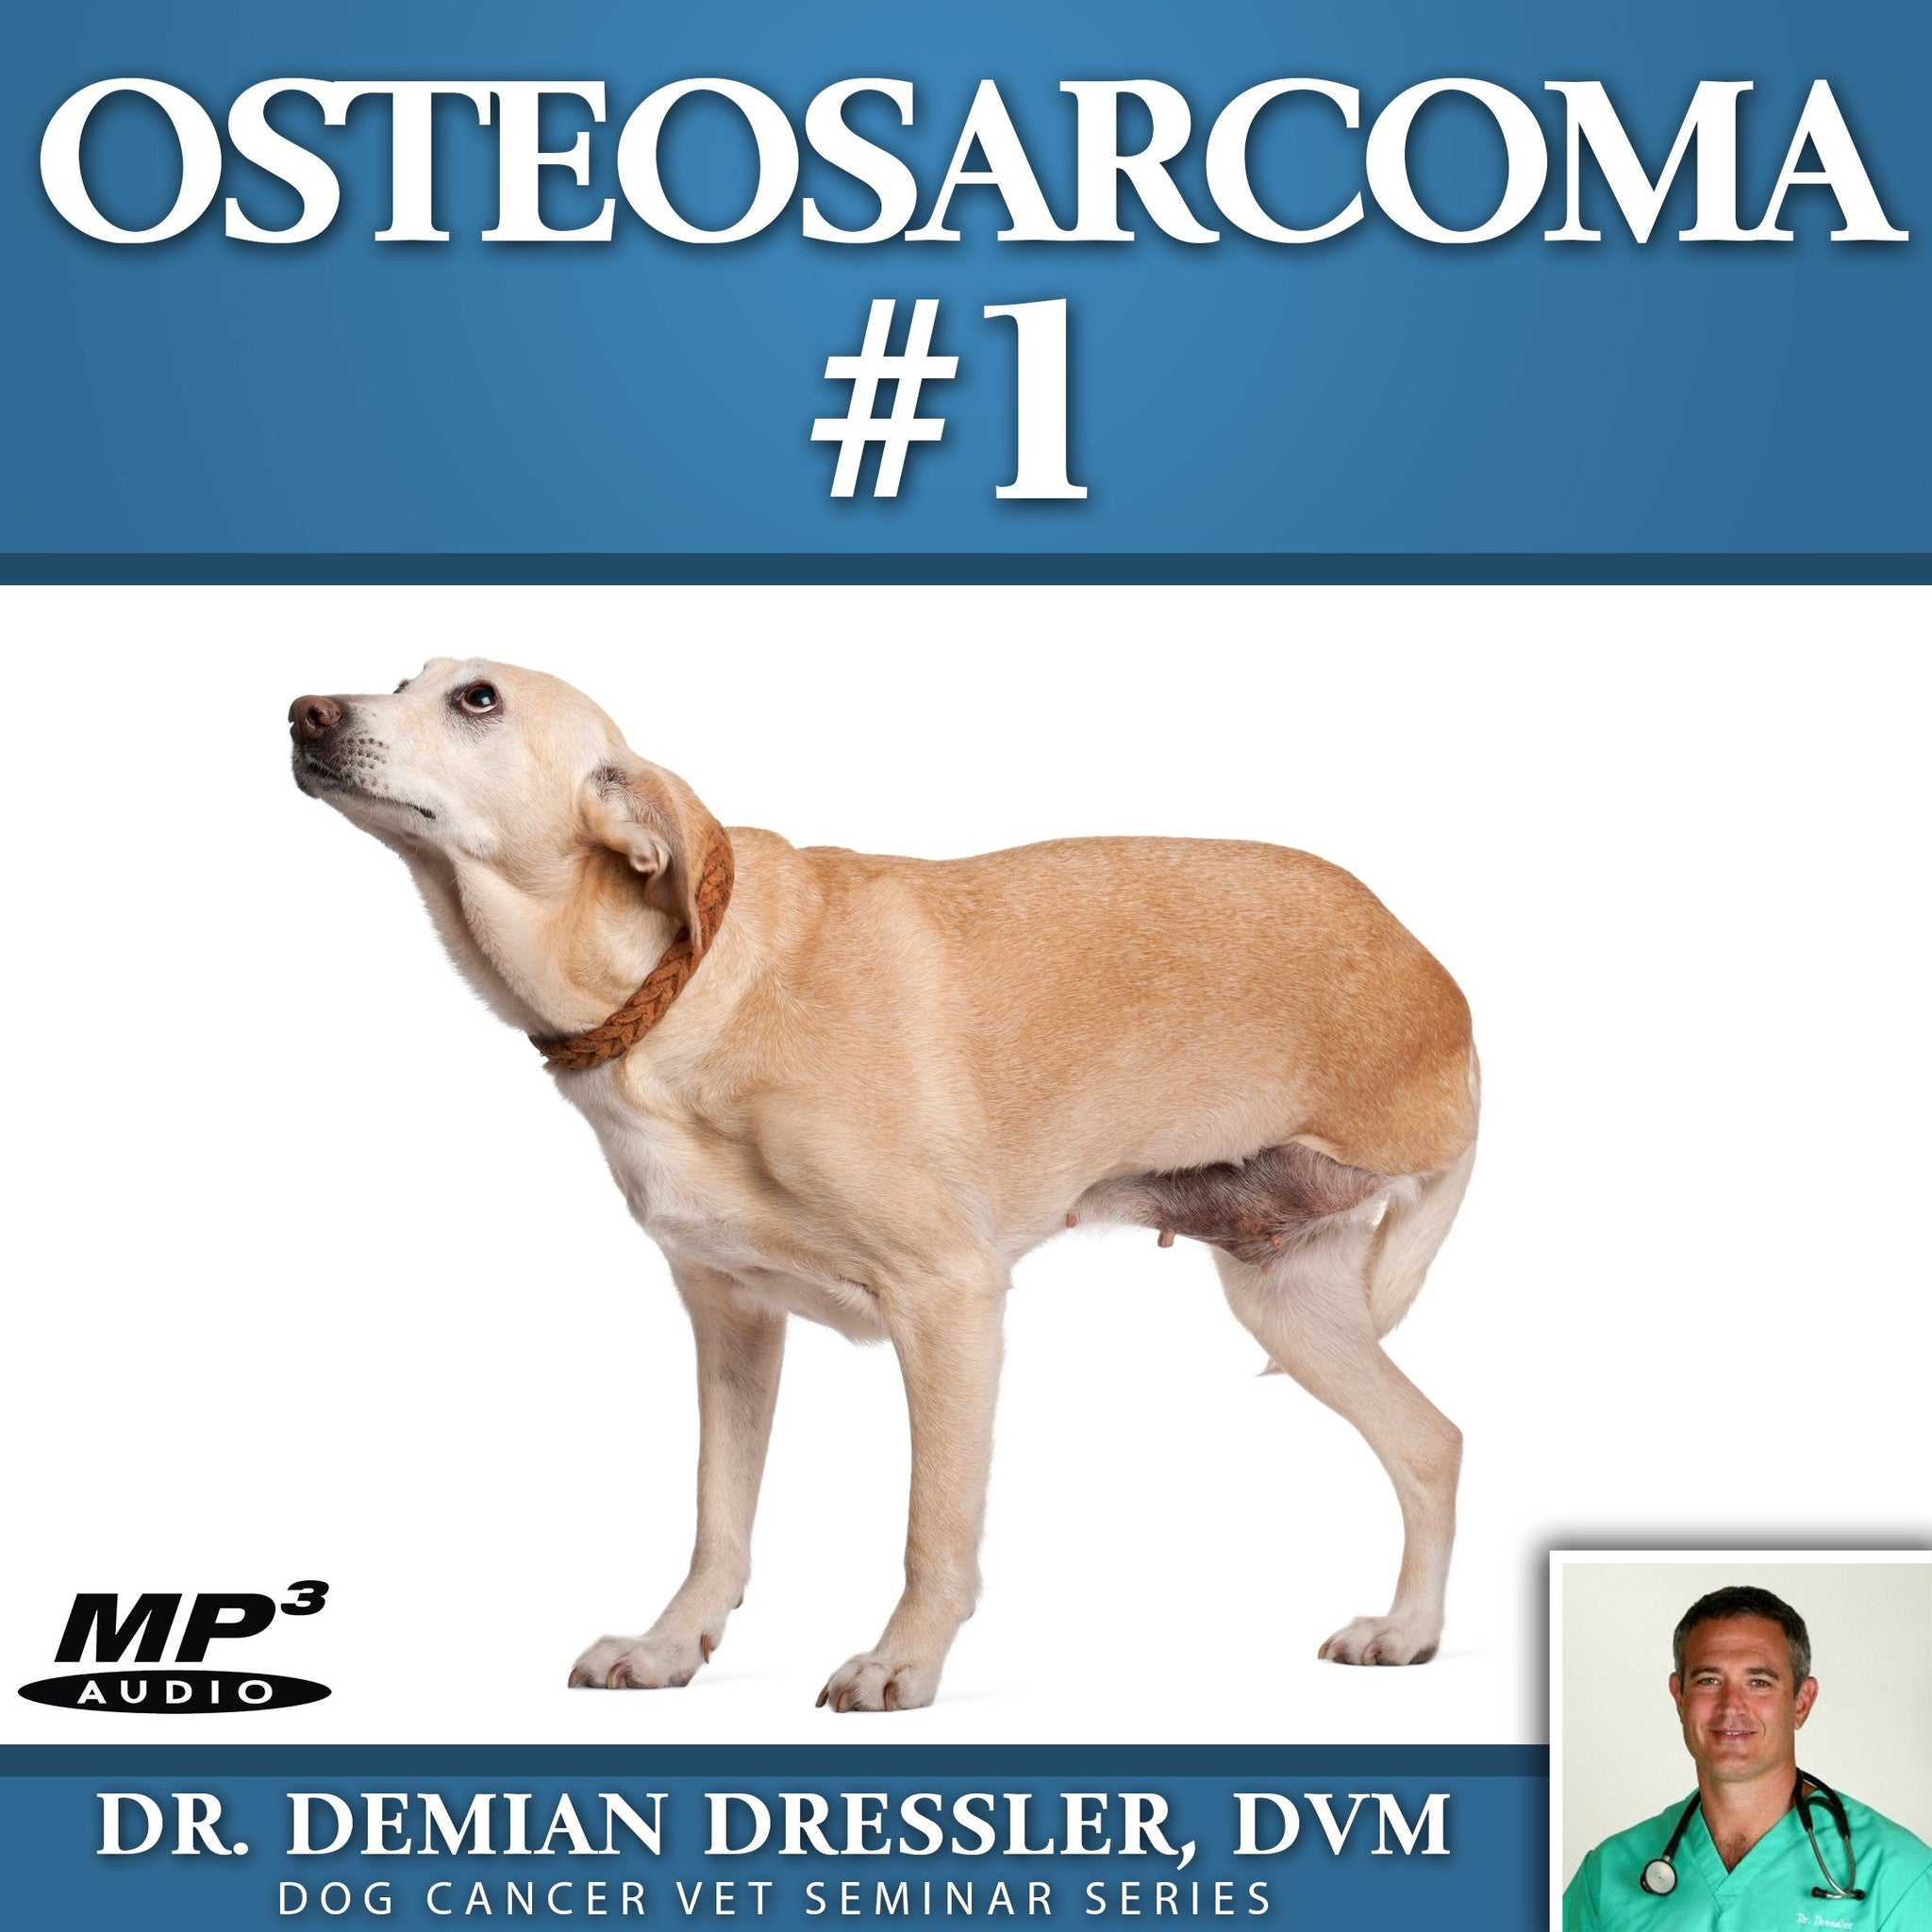 Bone Cancer (Osteosarcoma) in Dogs | petMD